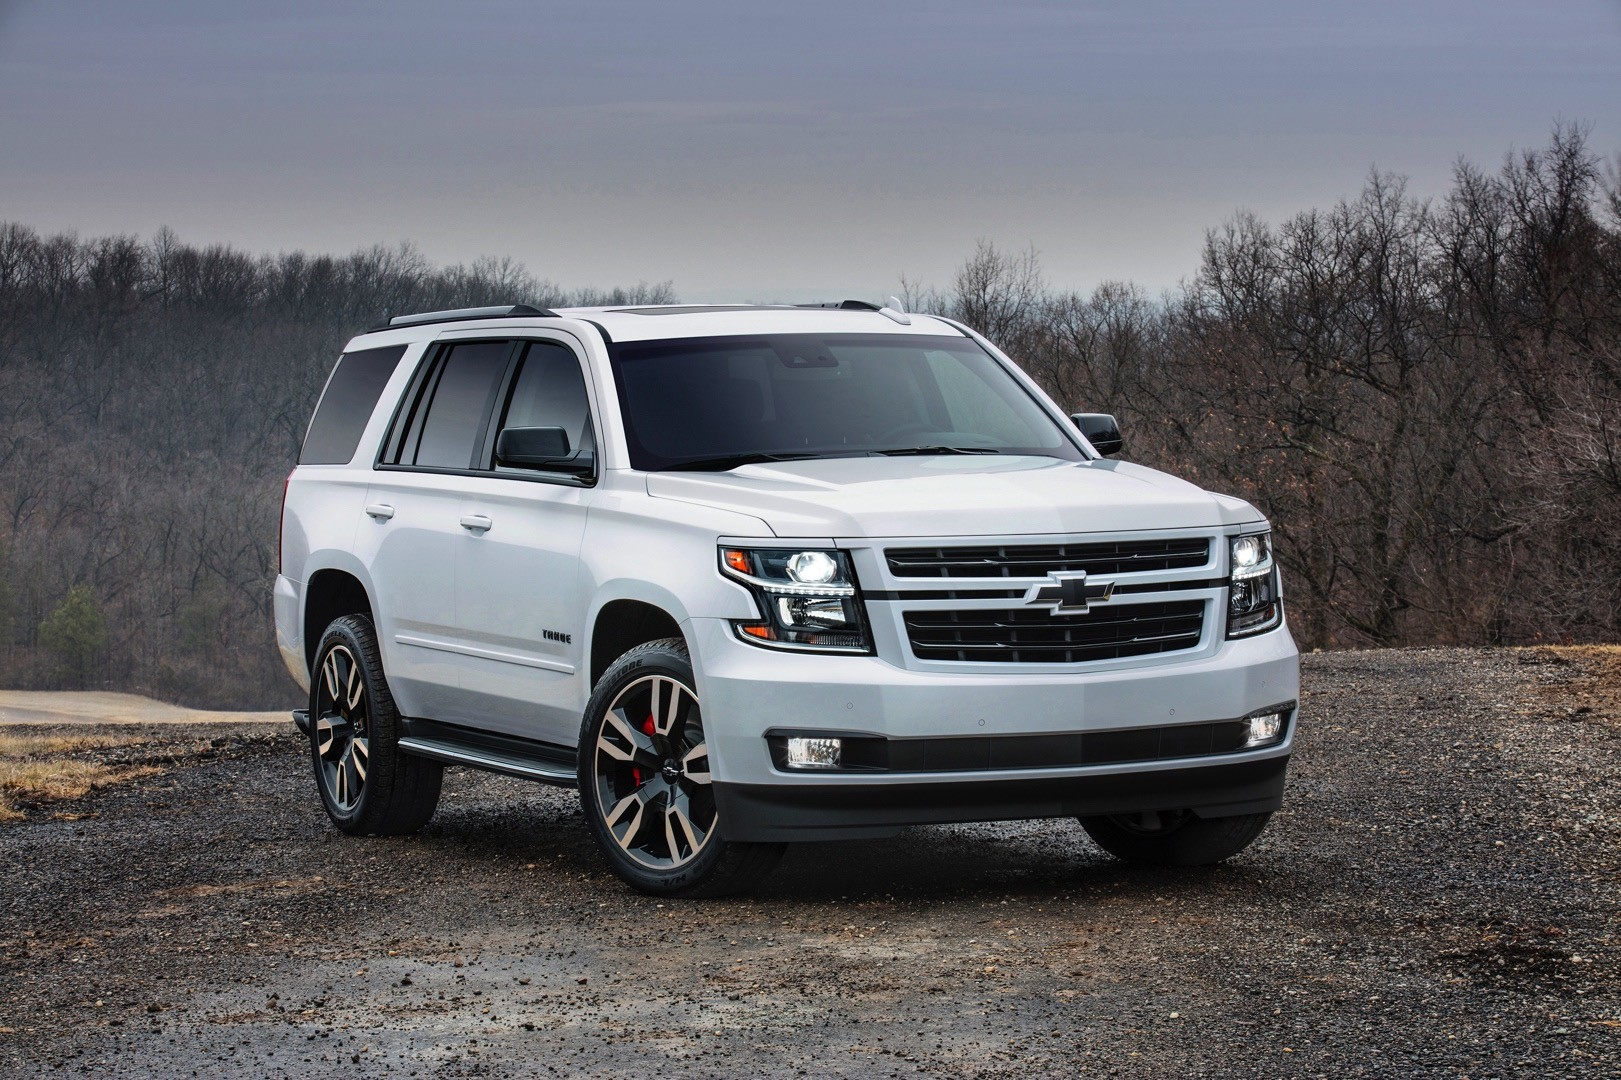 tahoe rst is a full size chevrolet suv packing 420 hp autoevolution. Black Bedroom Furniture Sets. Home Design Ideas